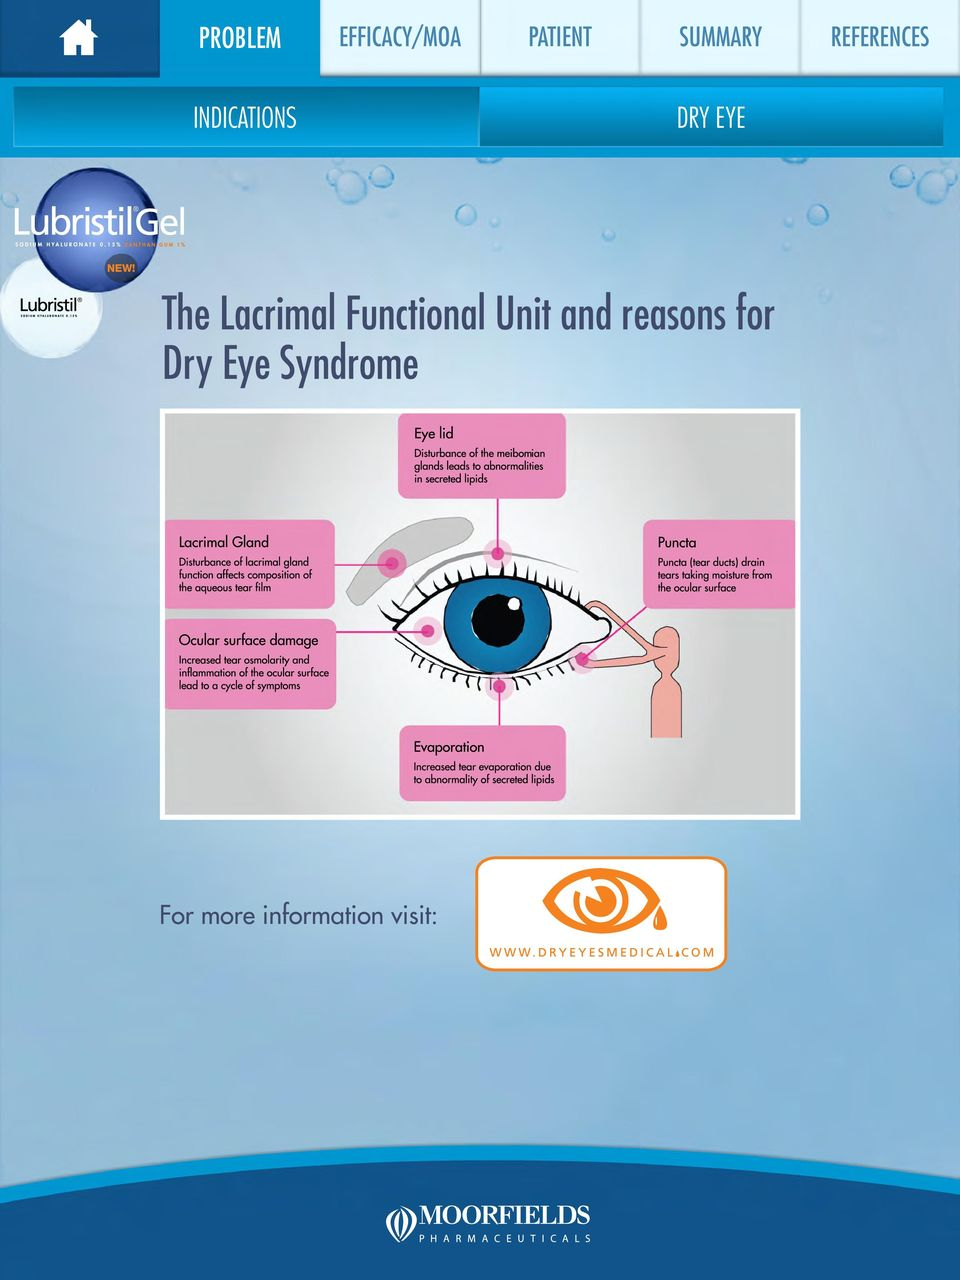 and reasons for Dry Eye